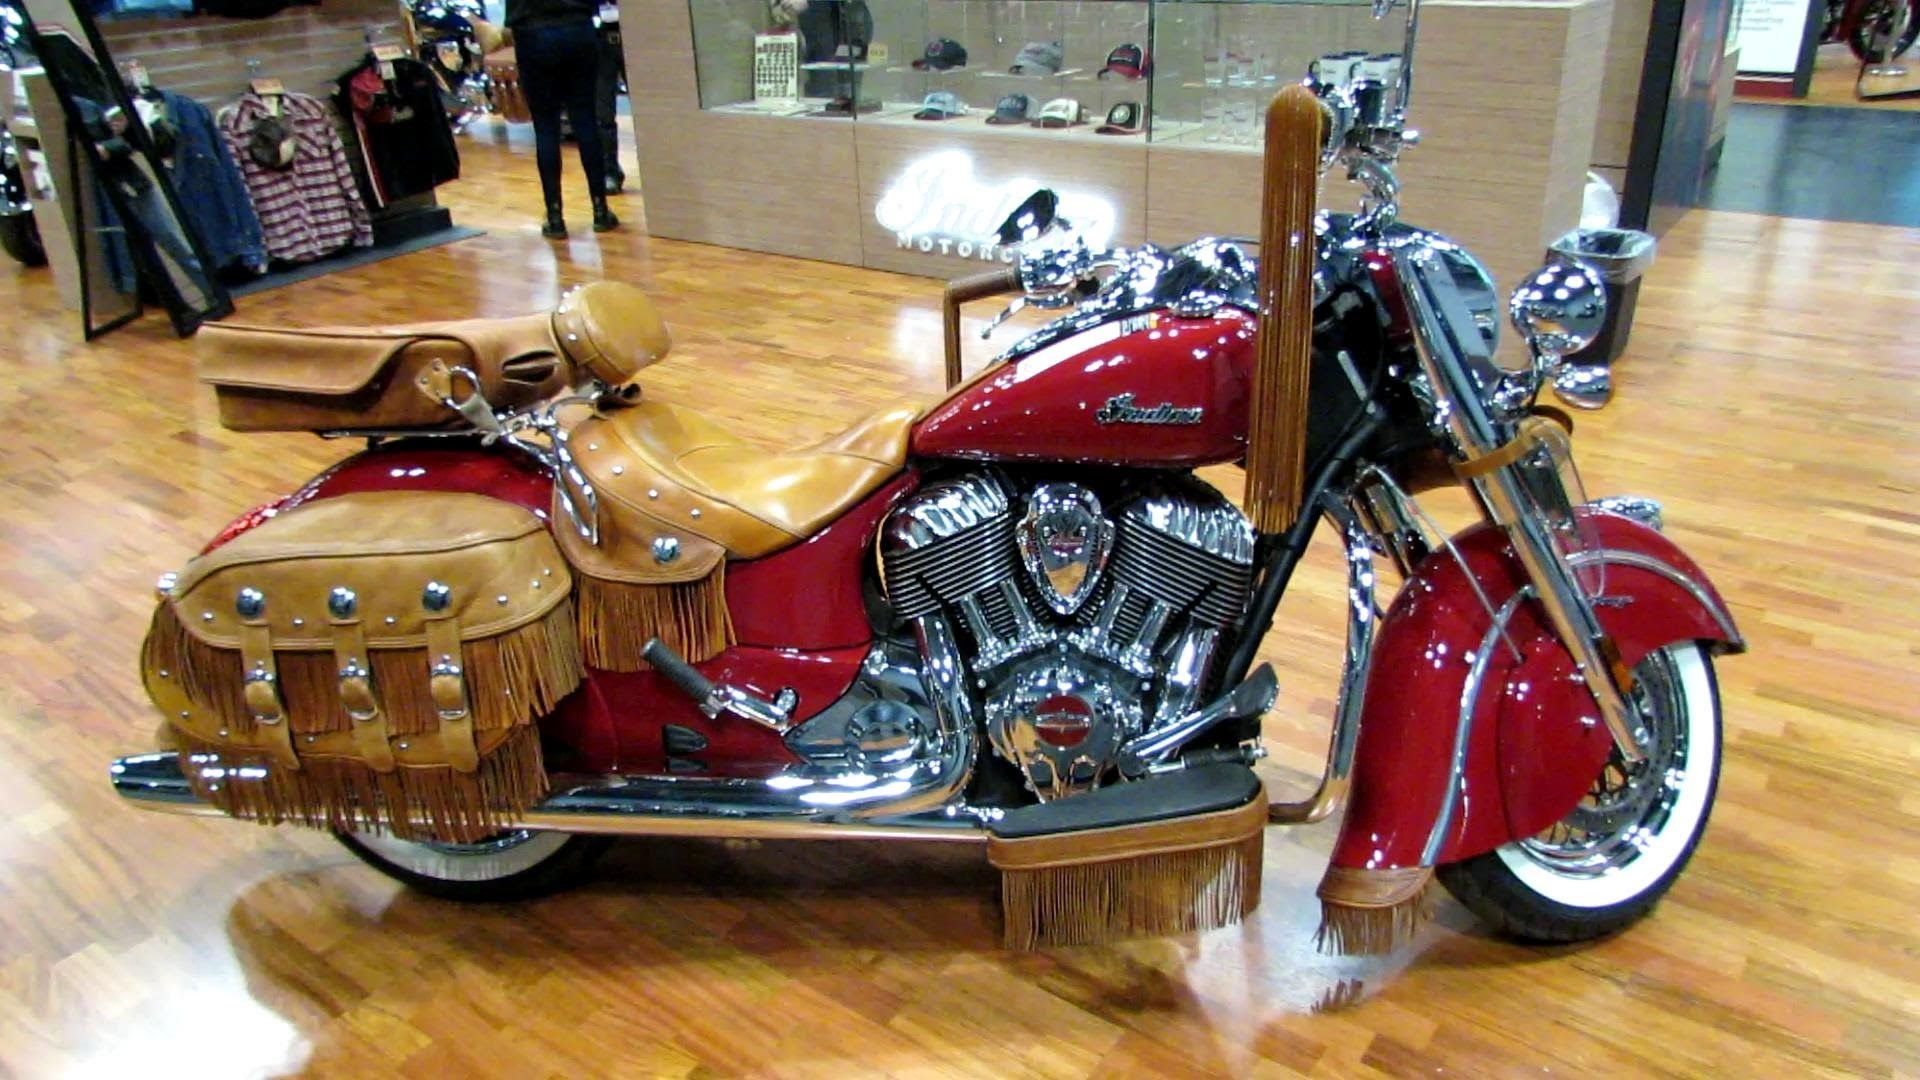 Res: 1920x1080, Displaying 15 Images For 2014 Indian Chief Motorcycle Wallpaper